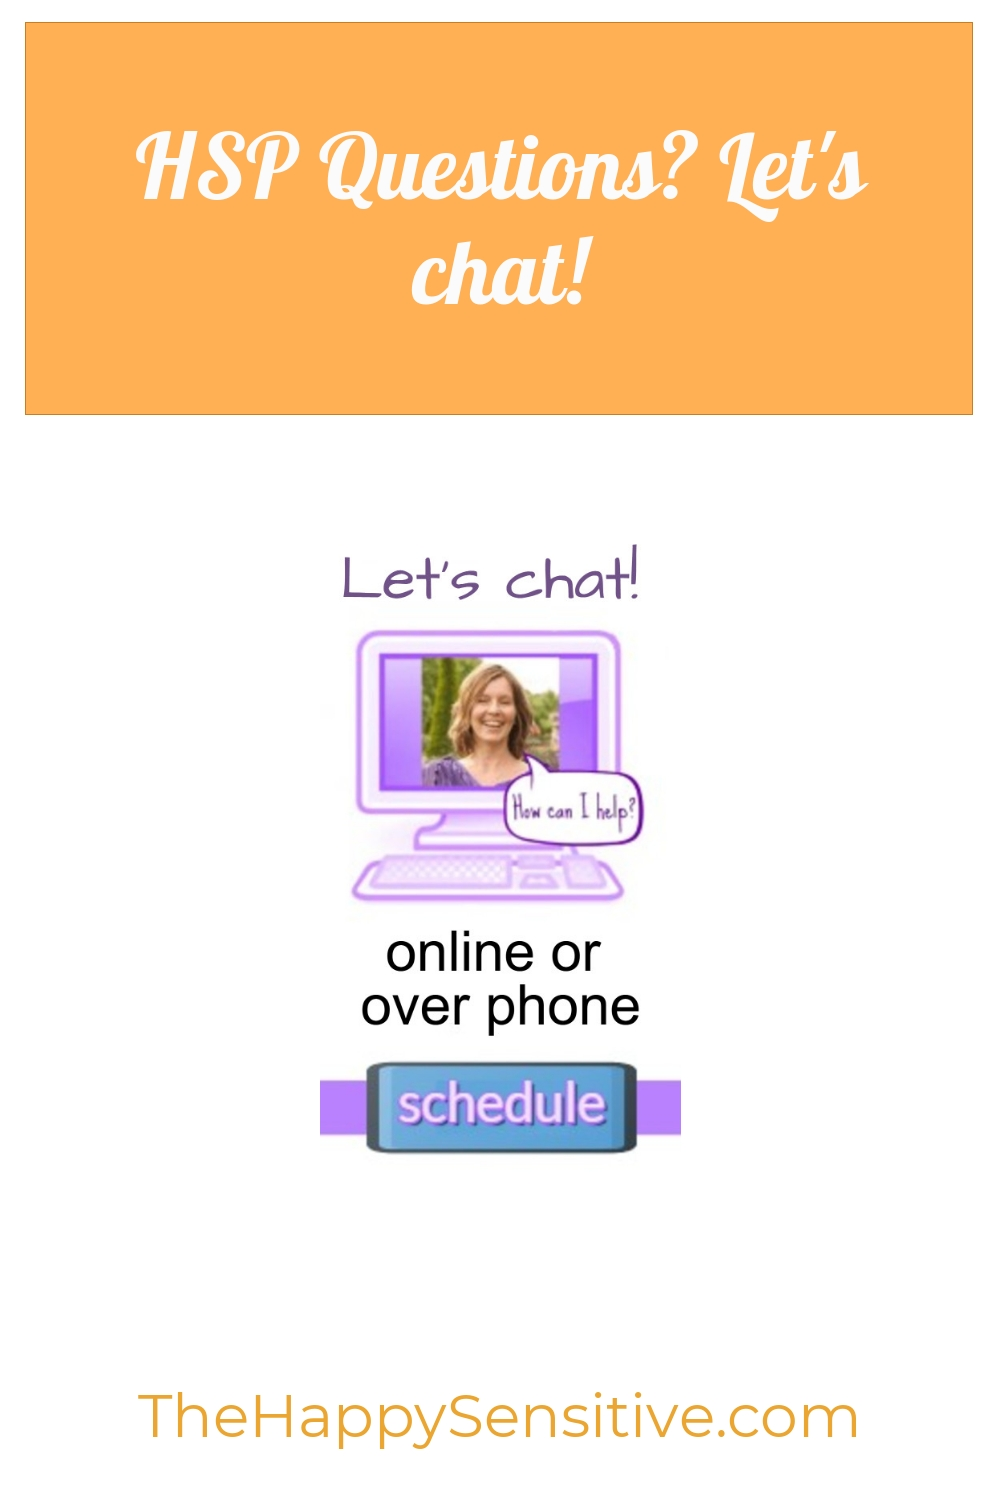 HSP Questions? Let's chat!